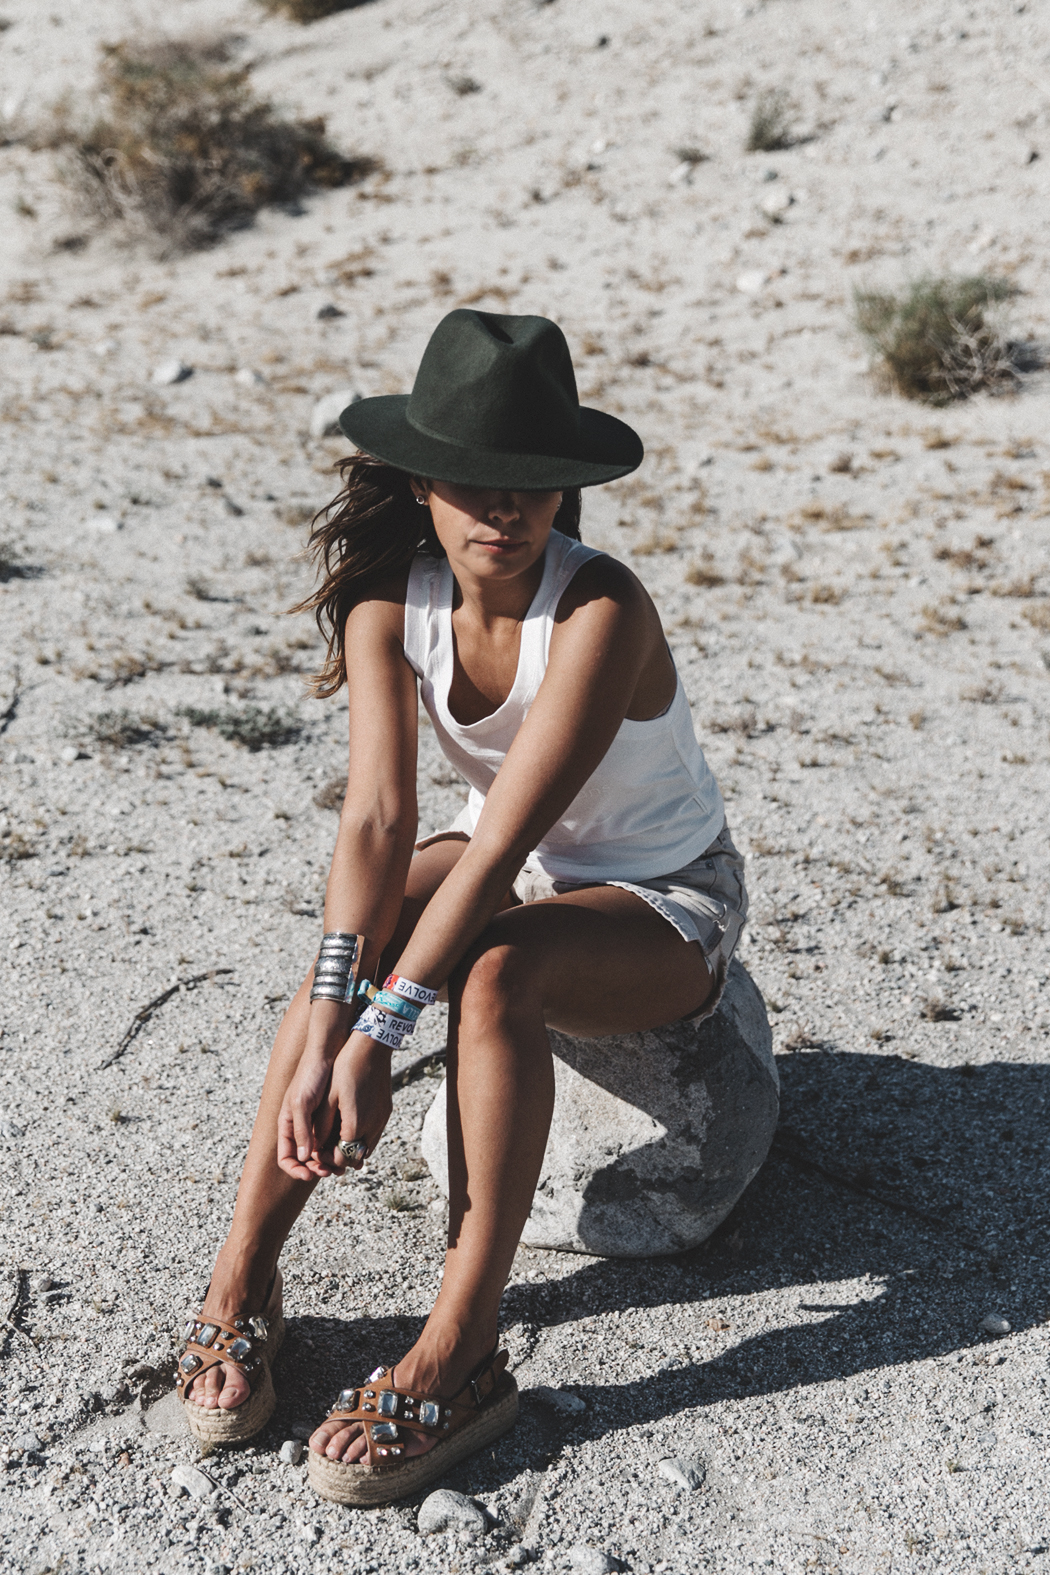 Calvin_Klein-White_Series_Collection-Shorts-Desert-Palm_Springs-Outfit-17